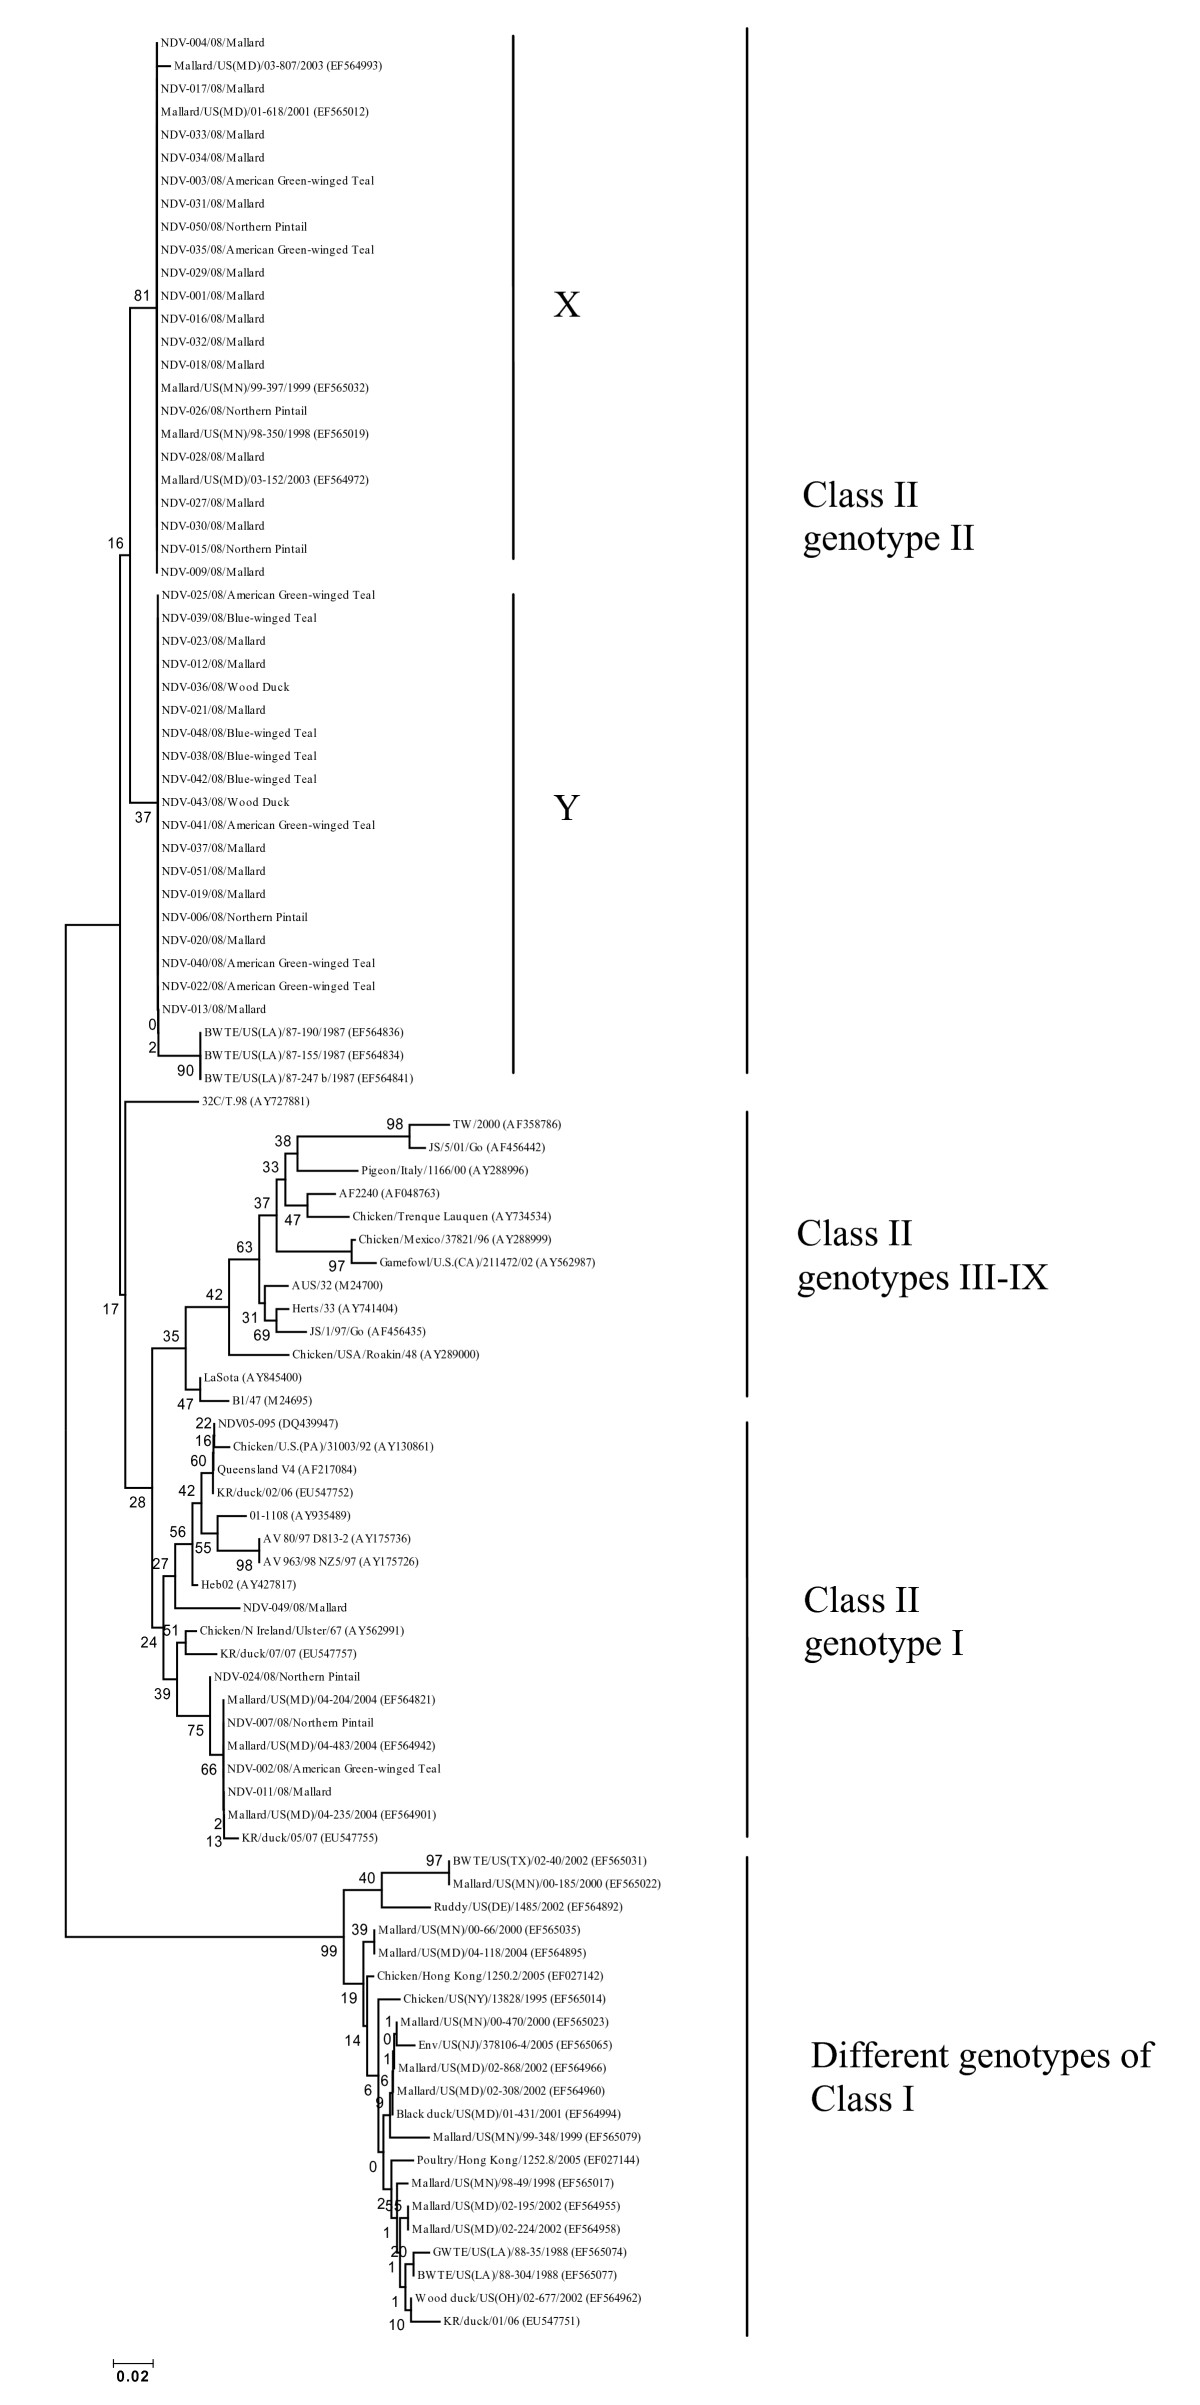 https://static-content.springer.com/image/art%3A10.1186%2F1743-422X-6-191/MediaObjects/12985_2009_Article_705_Fig1_HTML.jpg